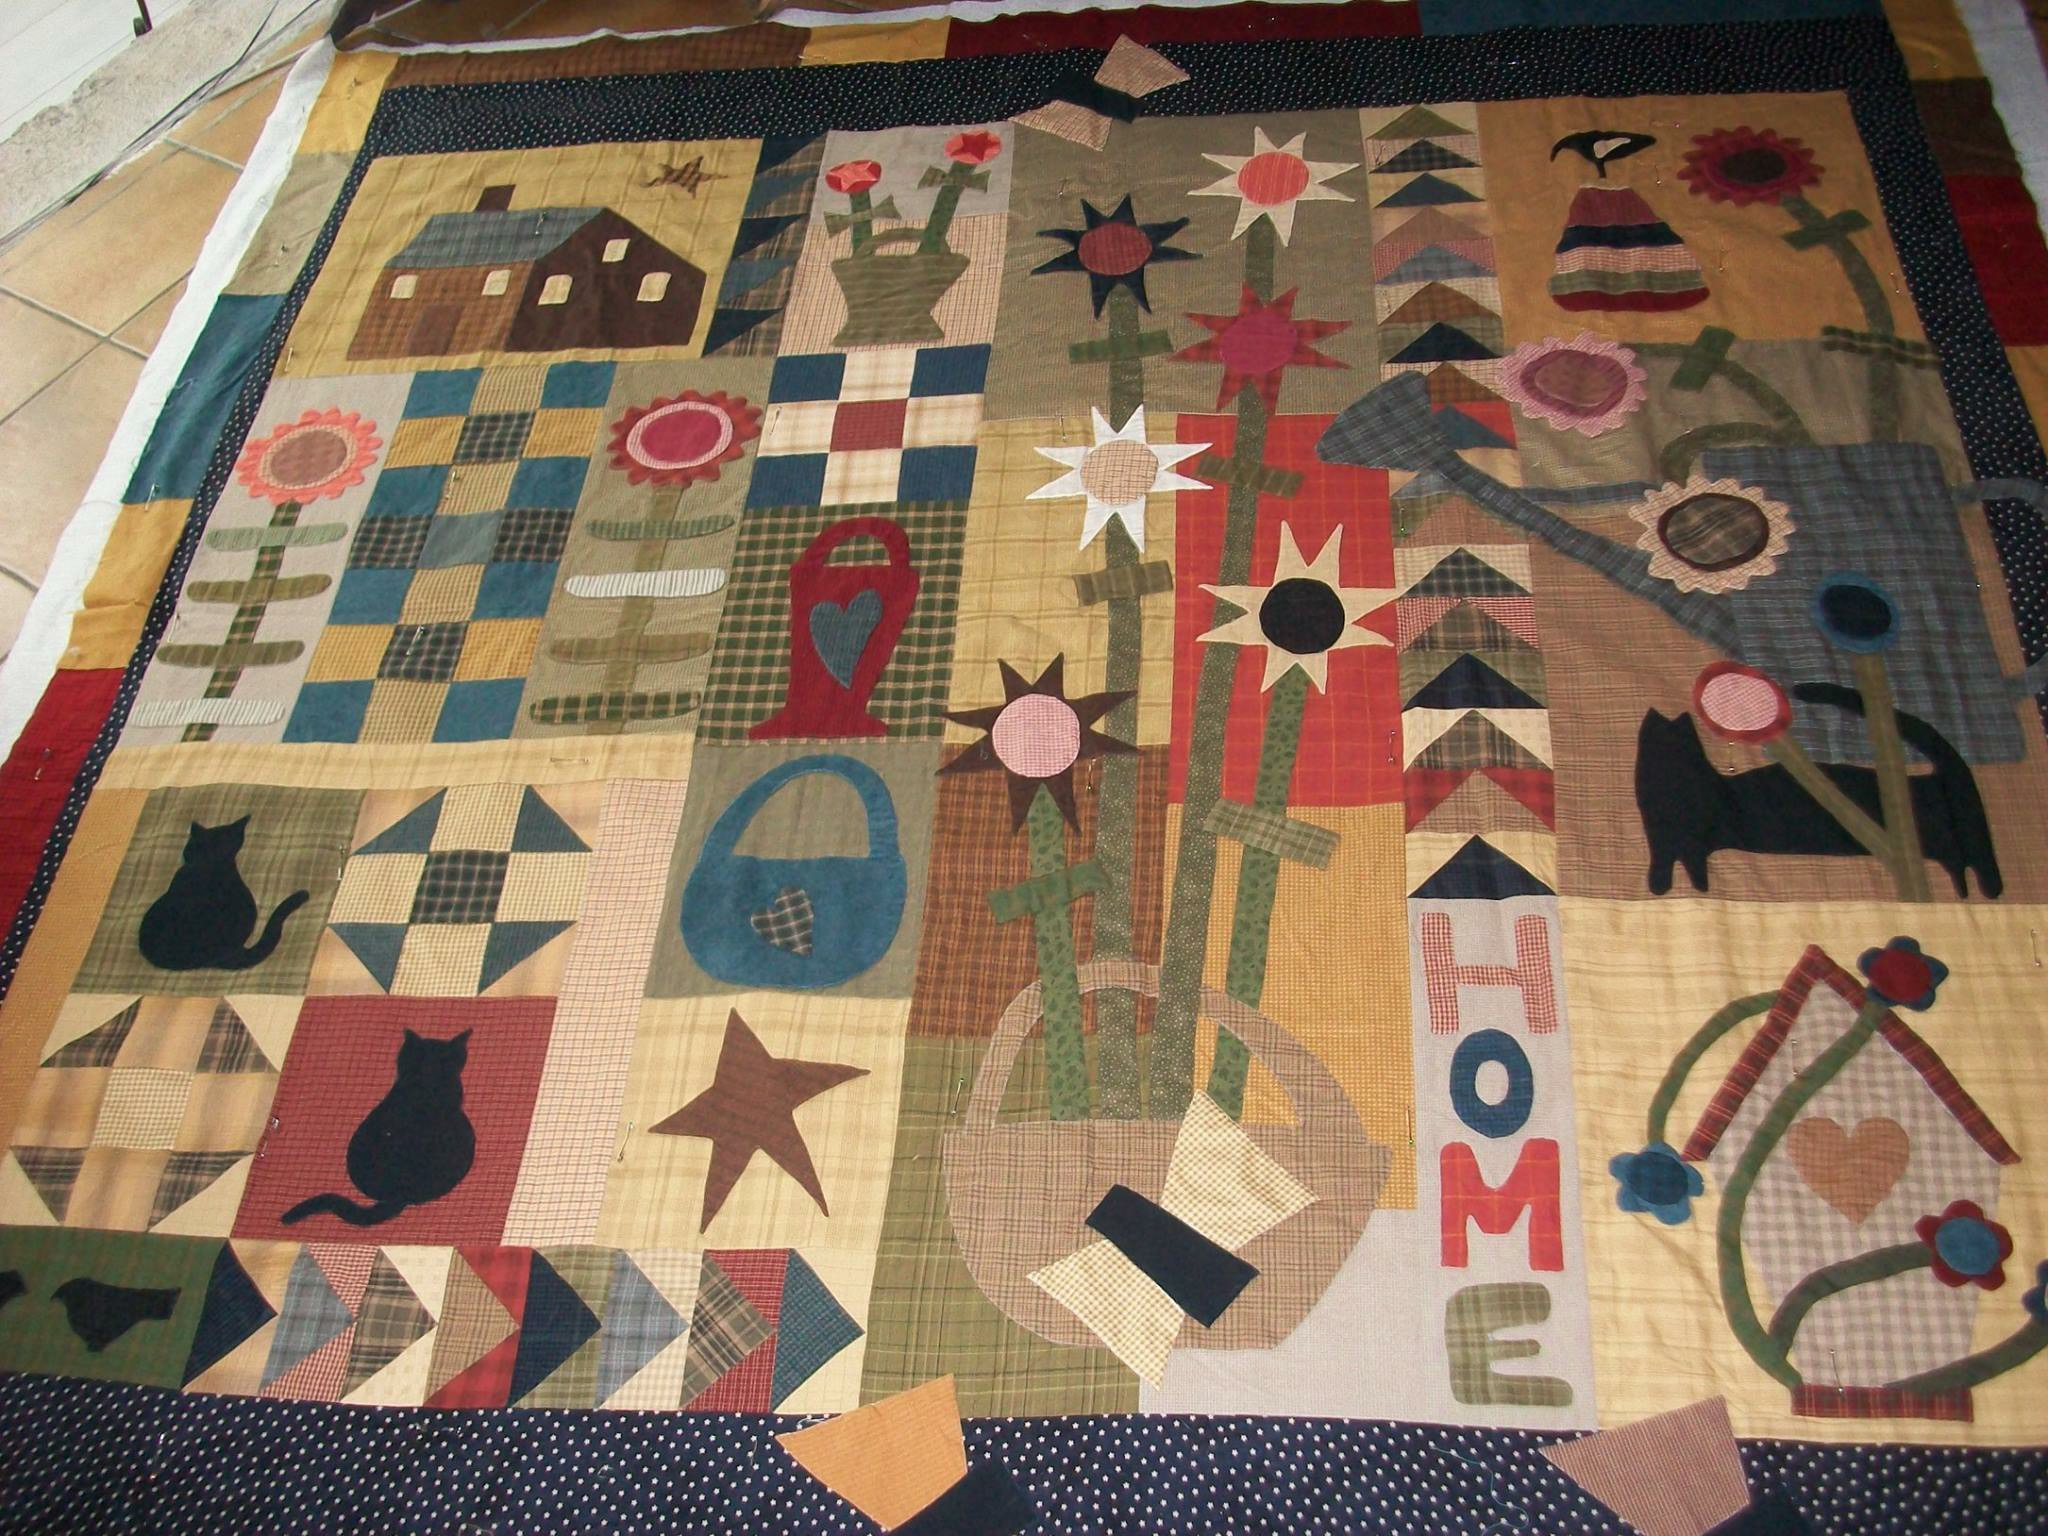 A Little Porch Time Quilt by